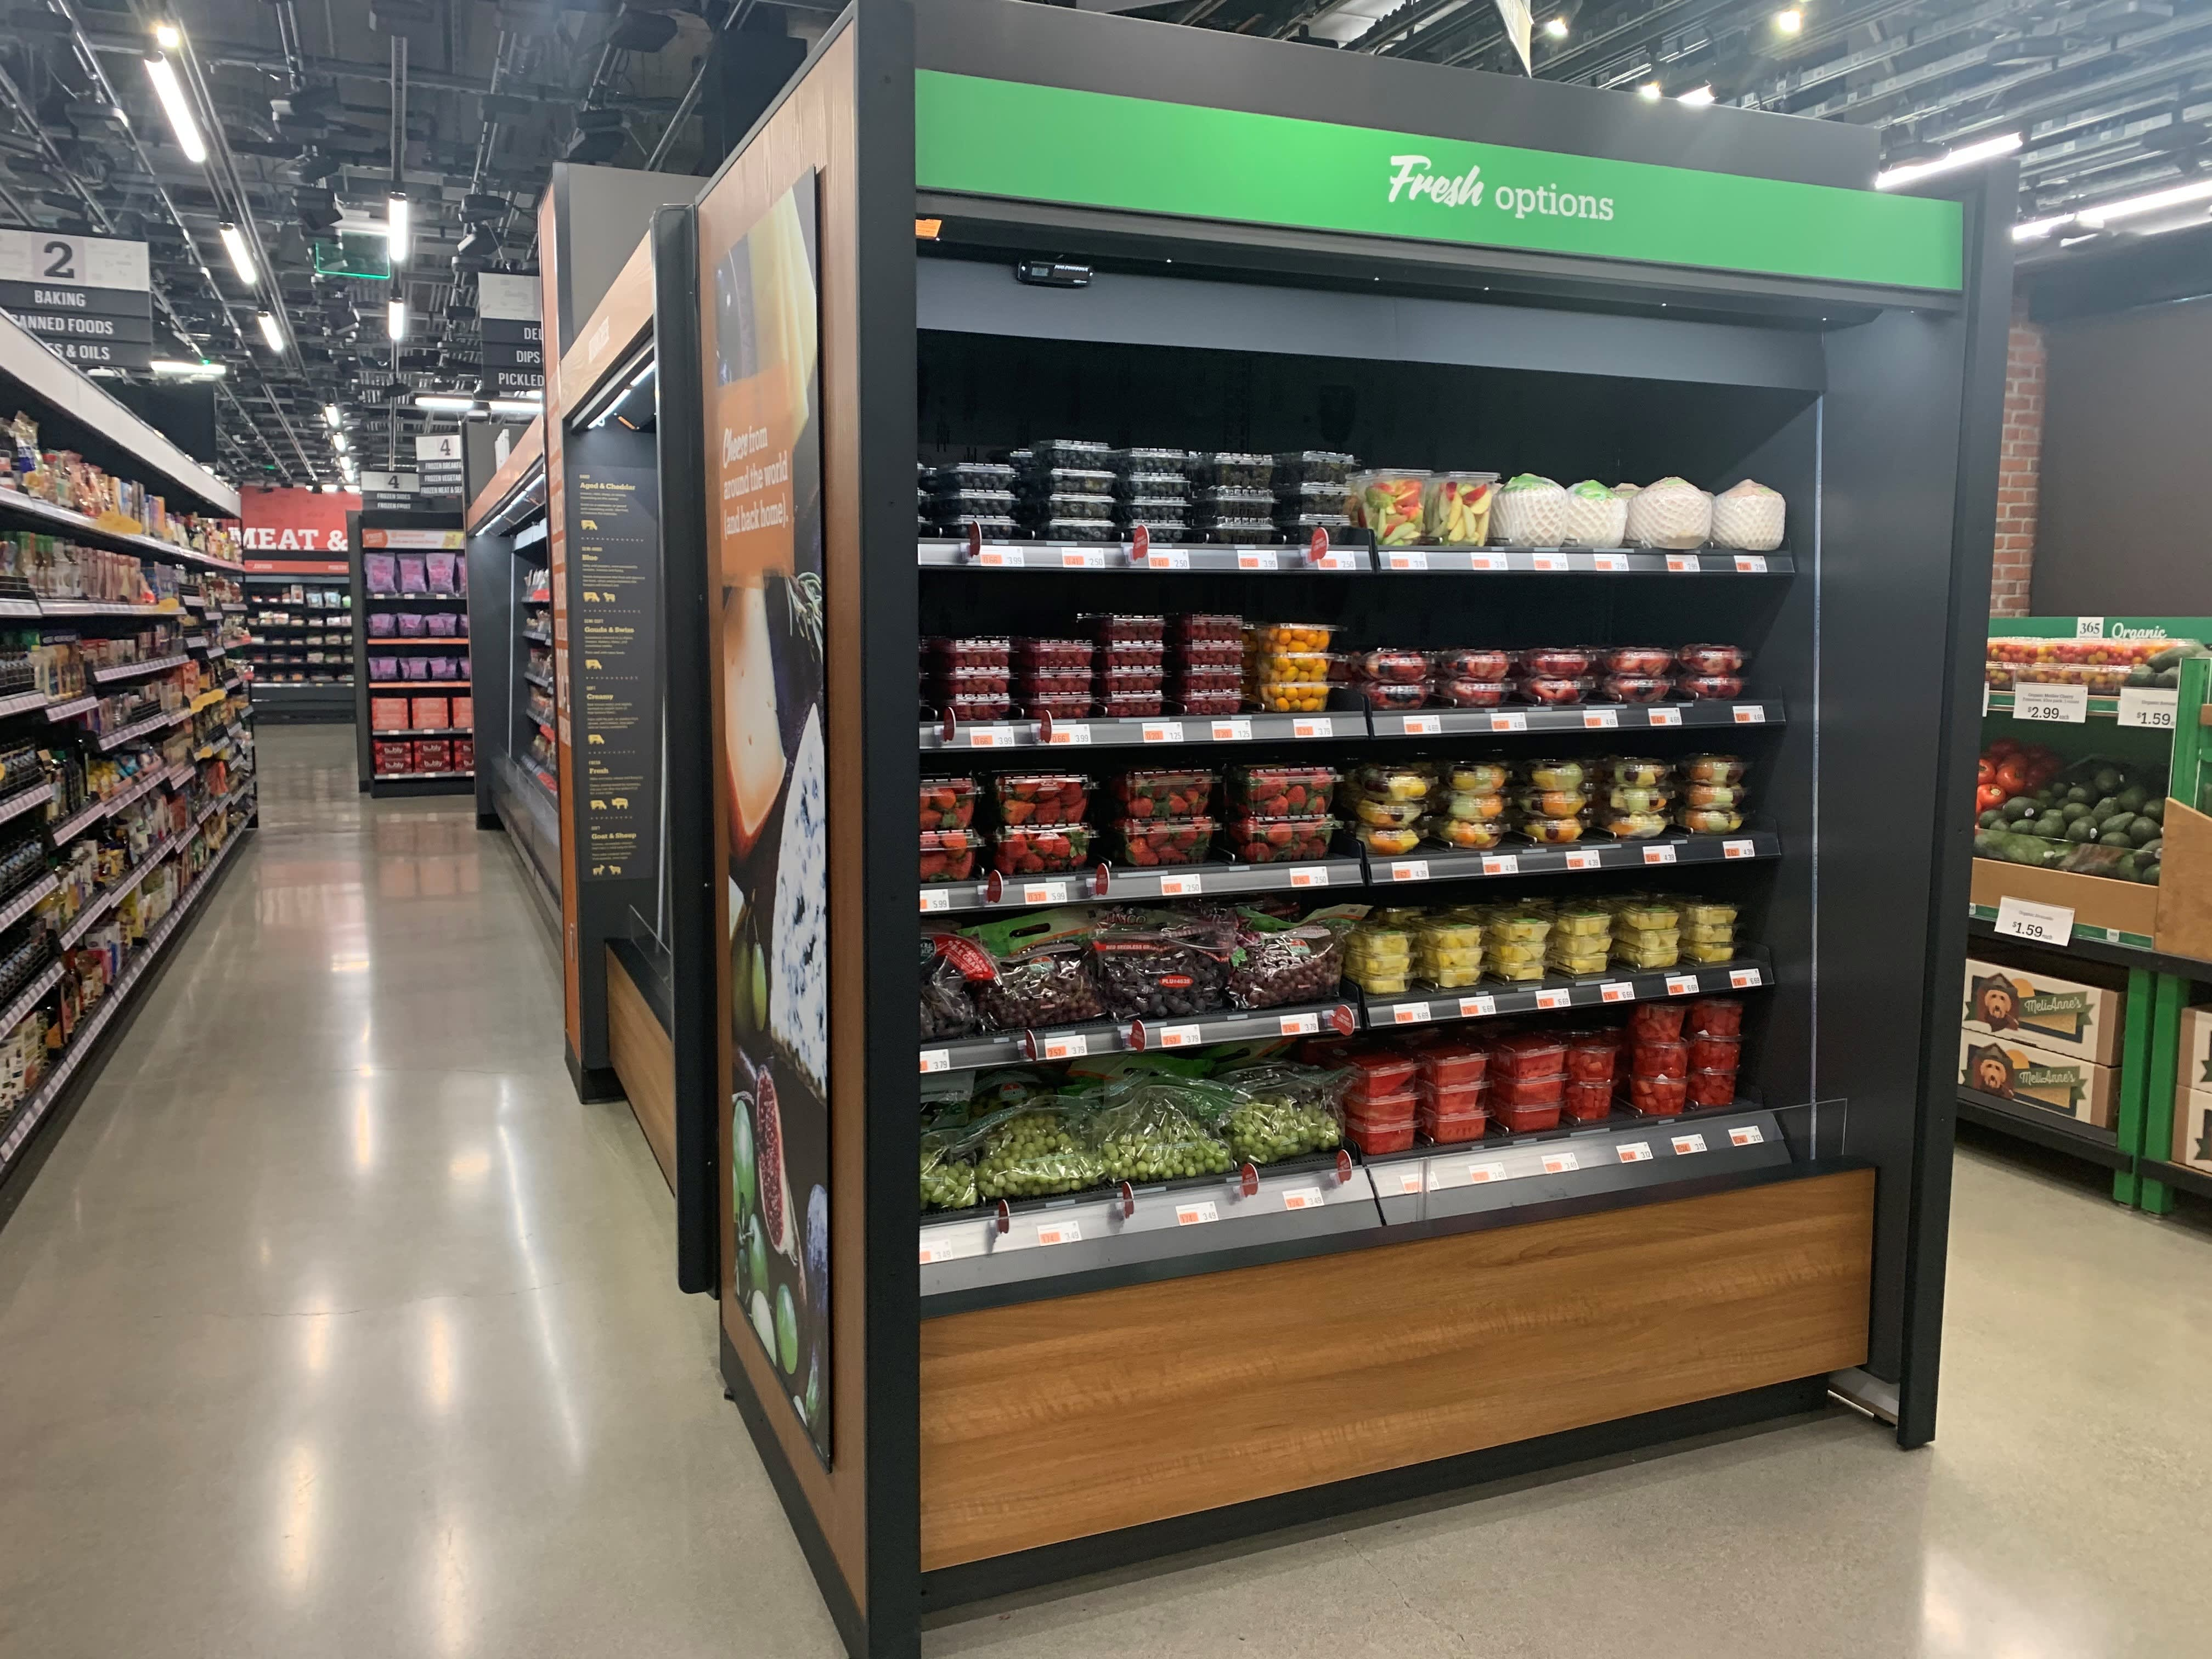 Amazon is opening its first full-size, cashierless grocery store. Here's a first look inside